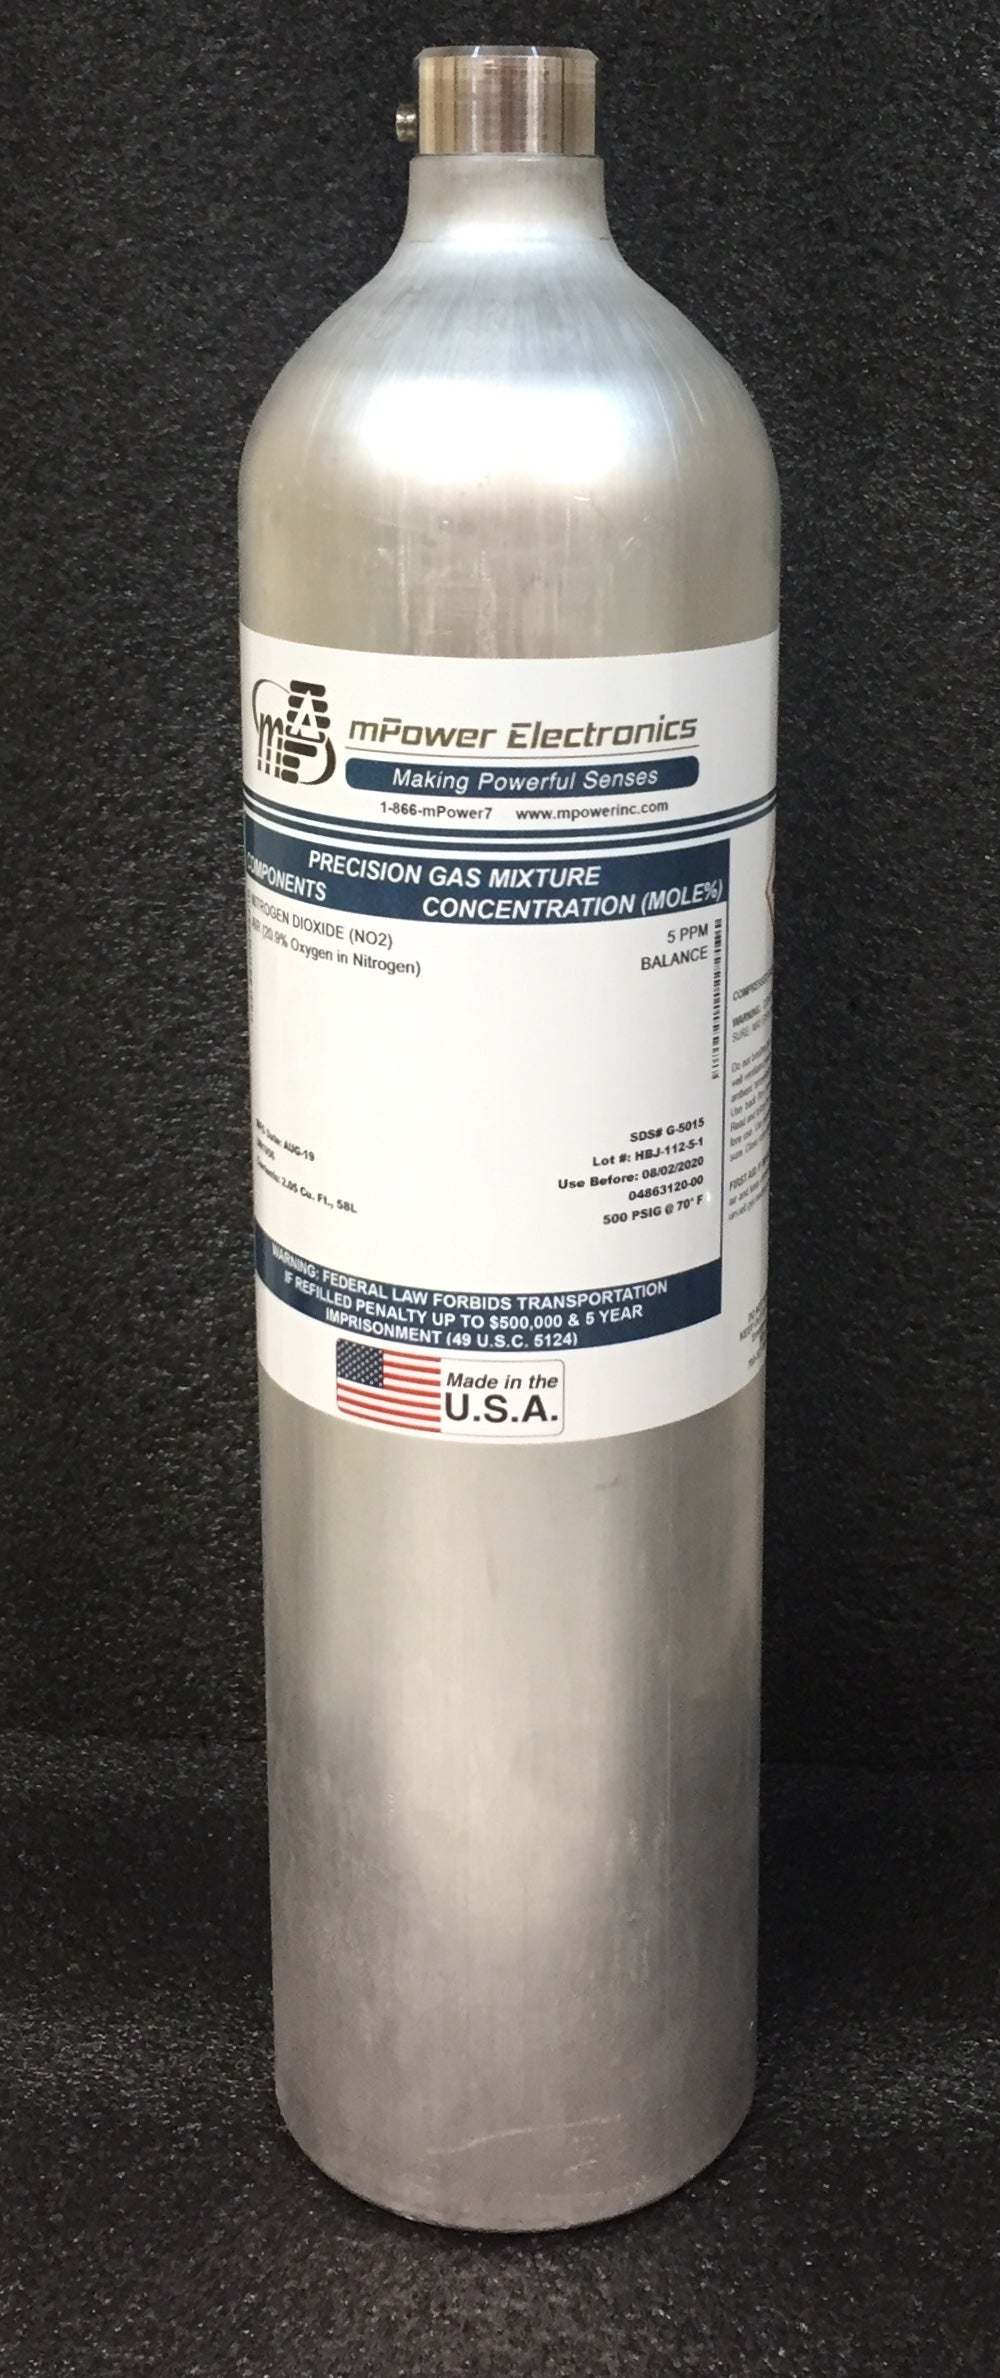 10 ppm Hydrogen Cyanide HCN/Bal air, C-10, 58L - Disposable cylinder